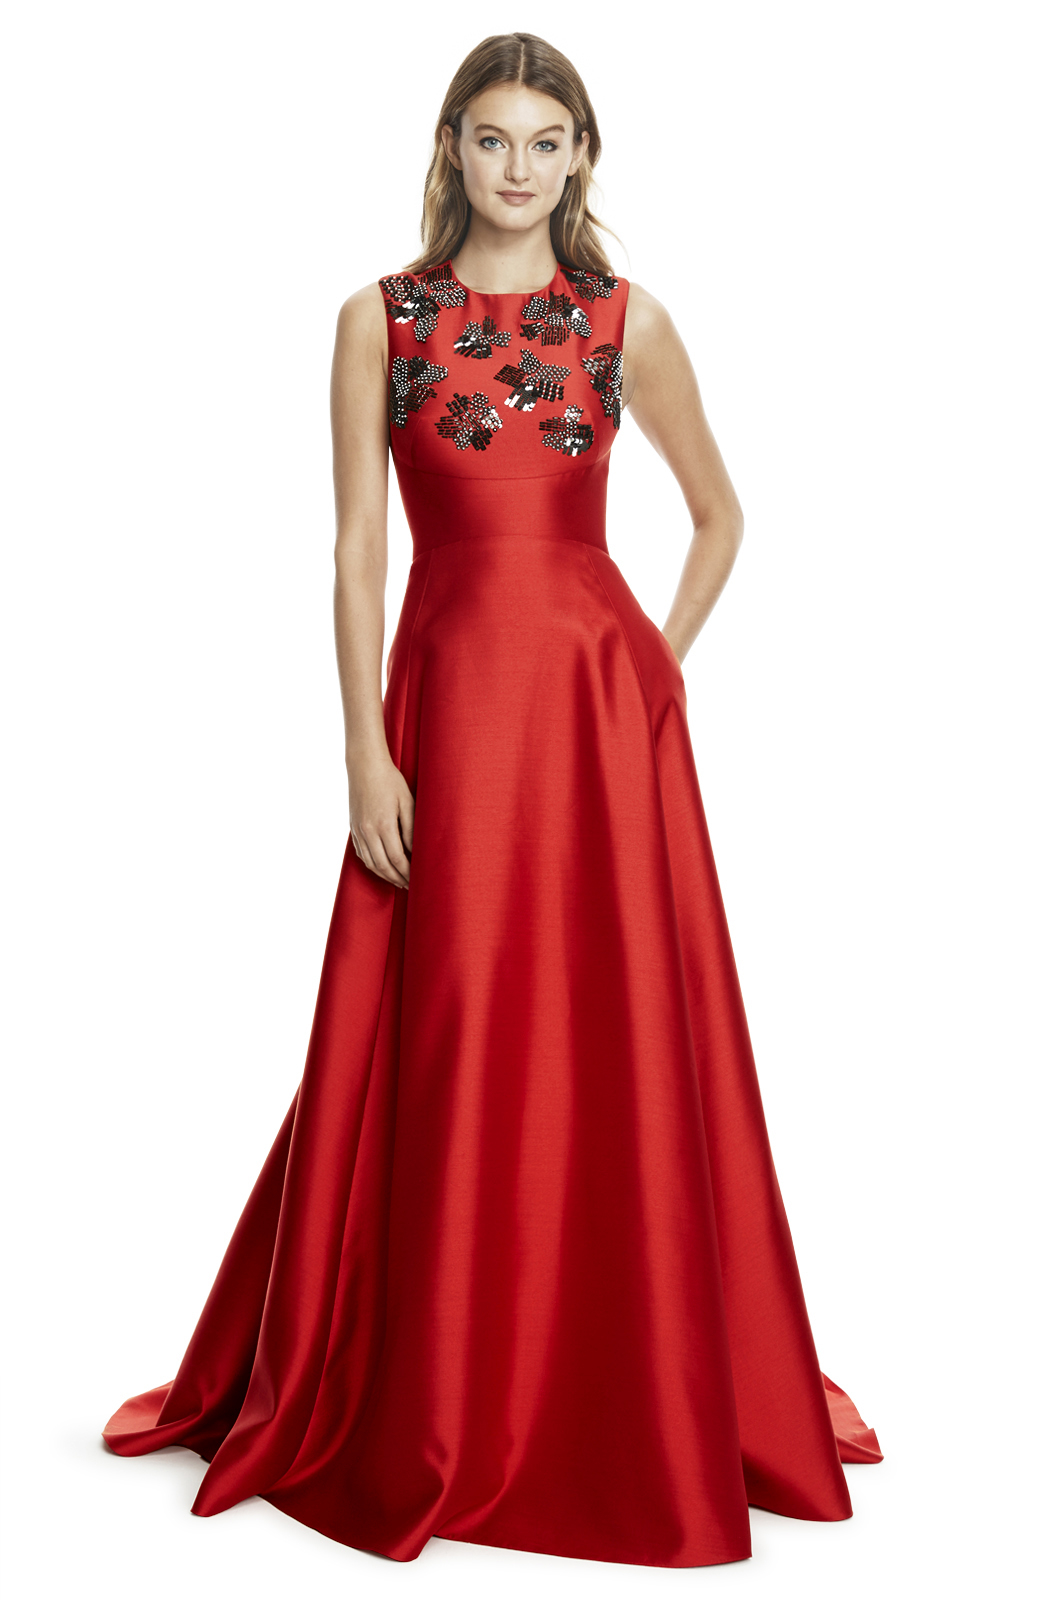 Lela rose Silk And Wool Embroidered Gown in Red